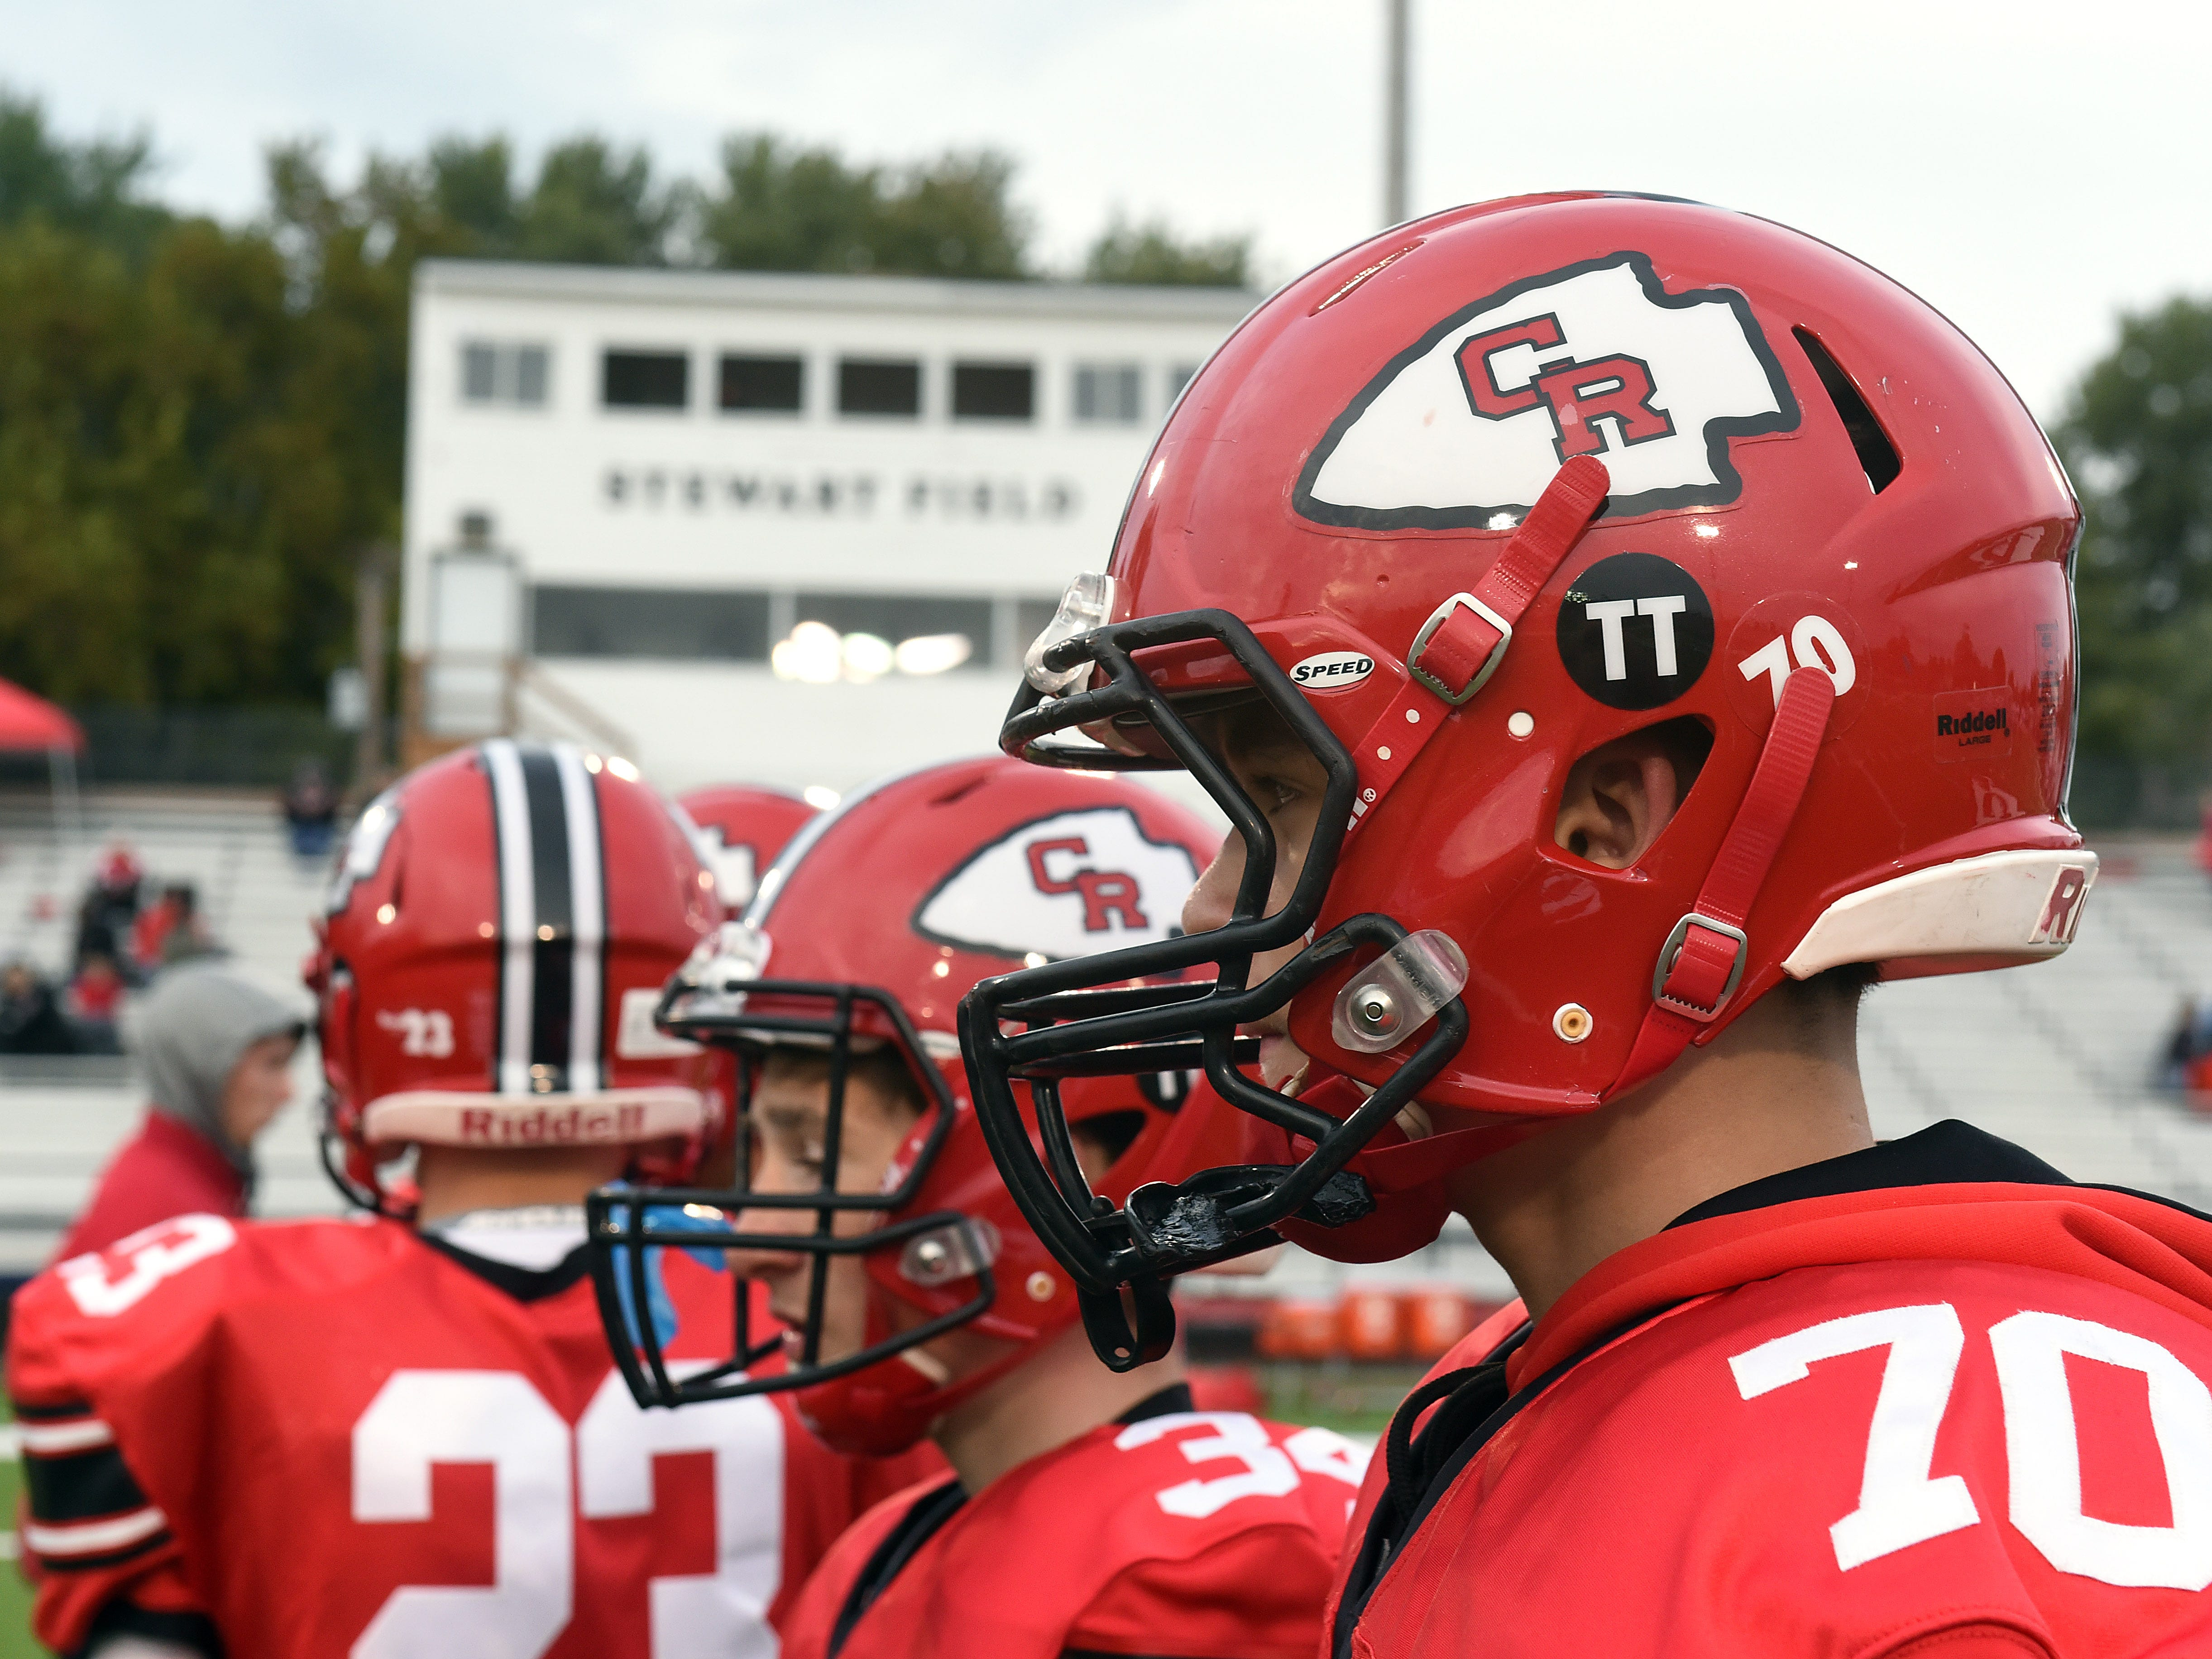 """Coshocton football players added """"TT"""" stickers to their helmets in memory of WTNS radio's Tom Thompson, who lost his battle with cancer on Oct. 6. Thompson covered local sports through his 45 years with the station."""